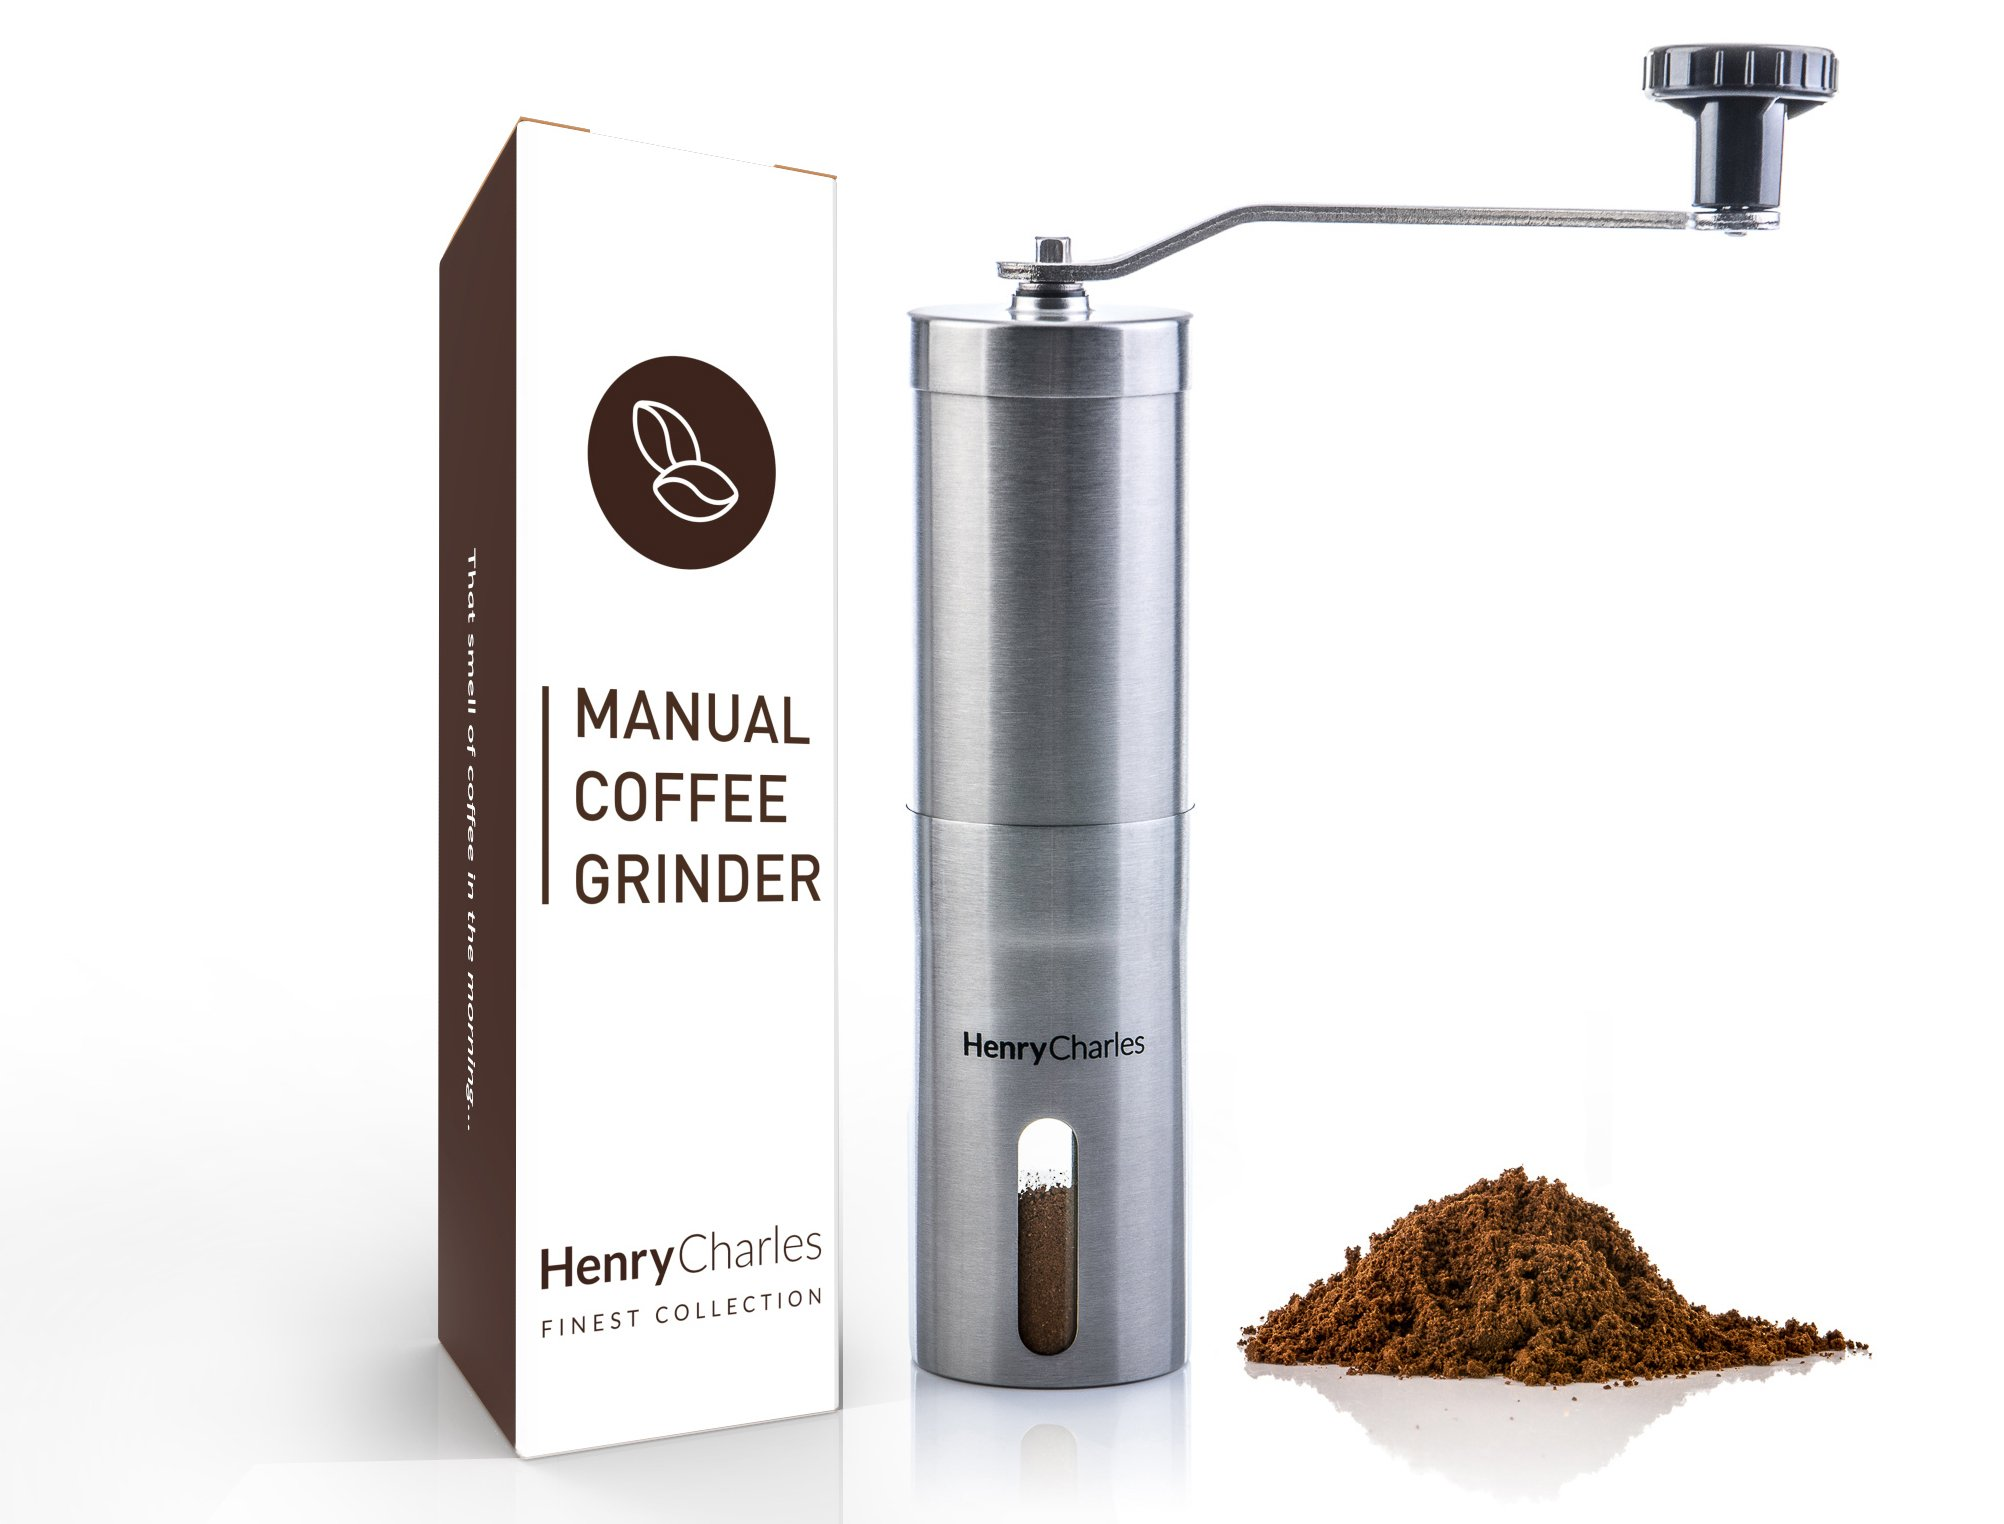 Henry Charles Manual Coffee Grinder, Adjustable Conical Ceramic Burr, Brushed Stainless Steel